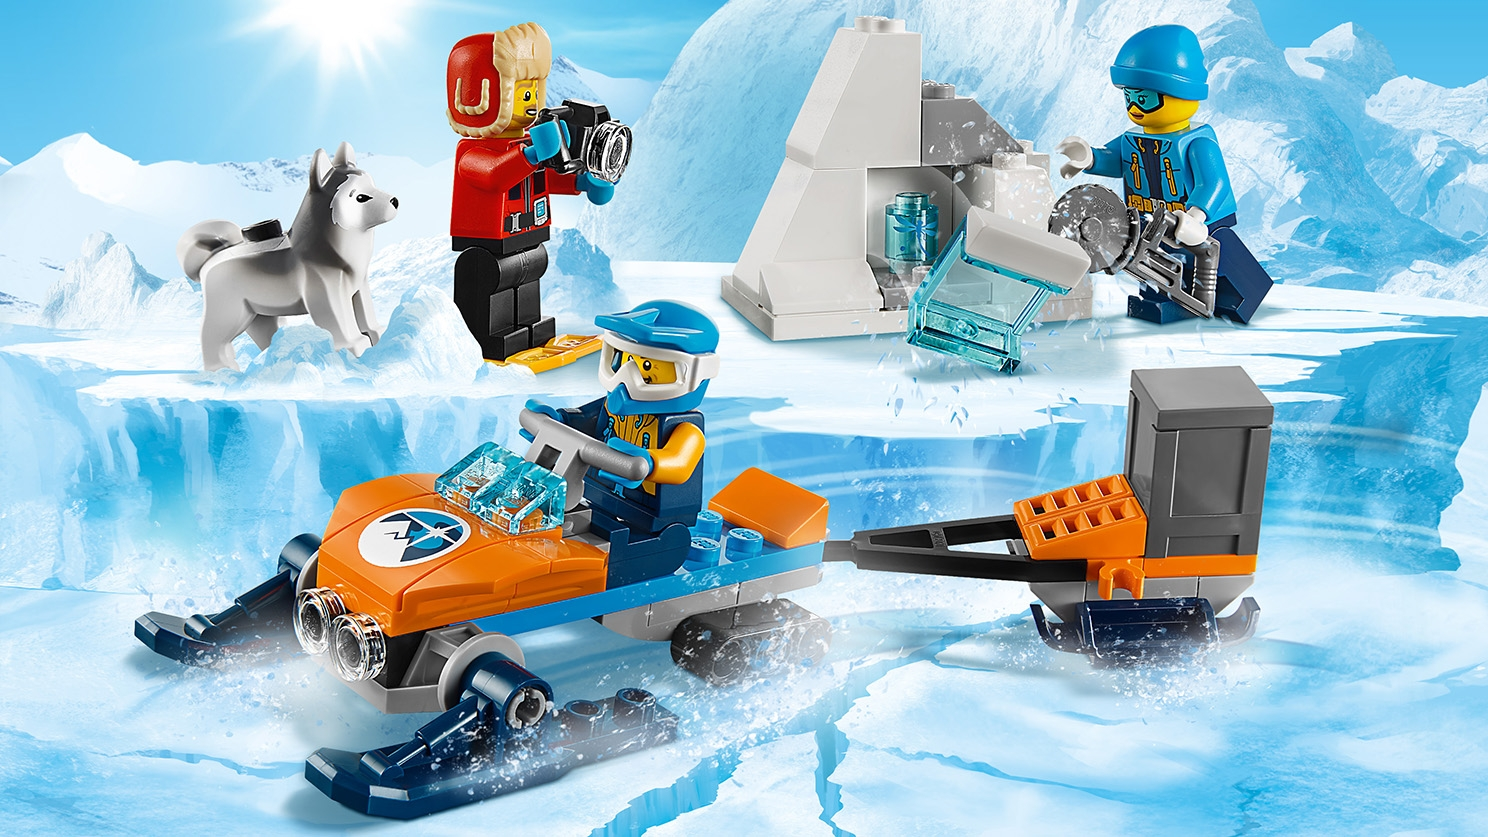 LEGO City Arctic Expedition - 60191 Arctic Exploration Team - The workers cut in ice and rocks to find fossils that they can transport on the ice glider and take pictures of.